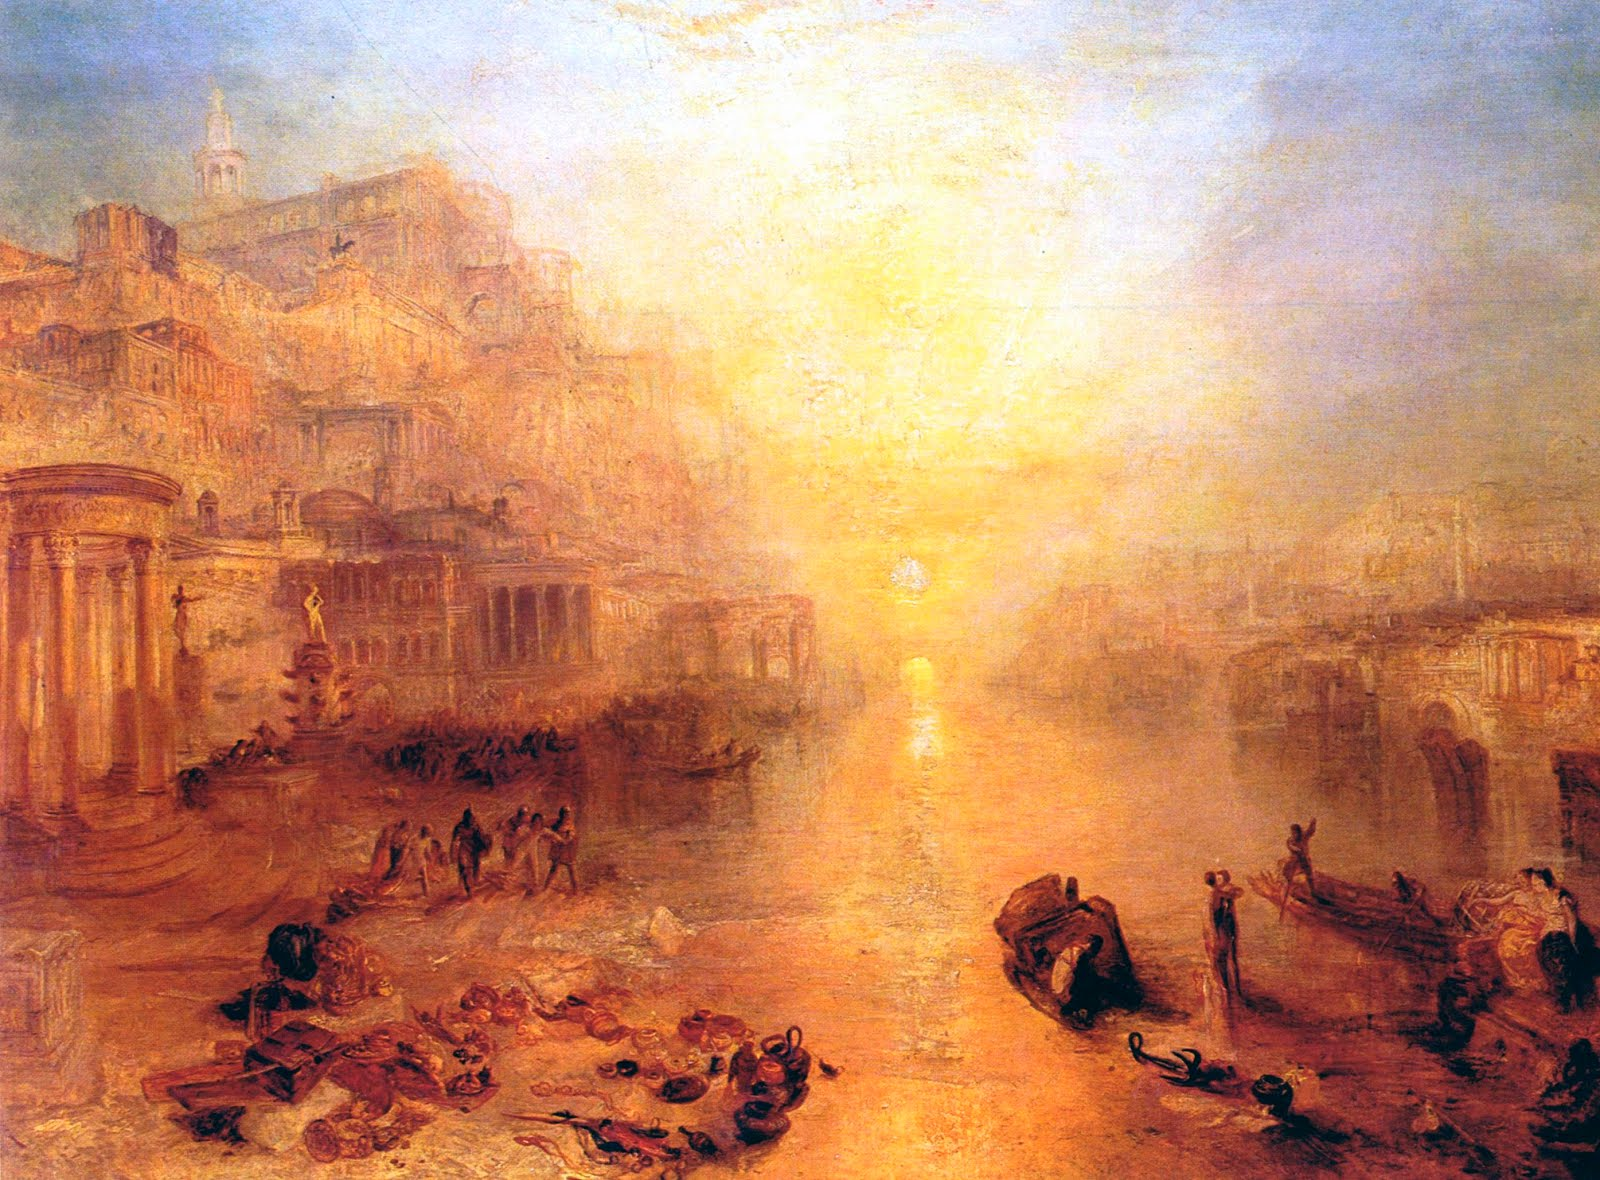 ������� < ������� ������ - ����� �������� �� ����  >:: ������ Ҹ���� ( William Turner ) - Ҹ���� ������ ����